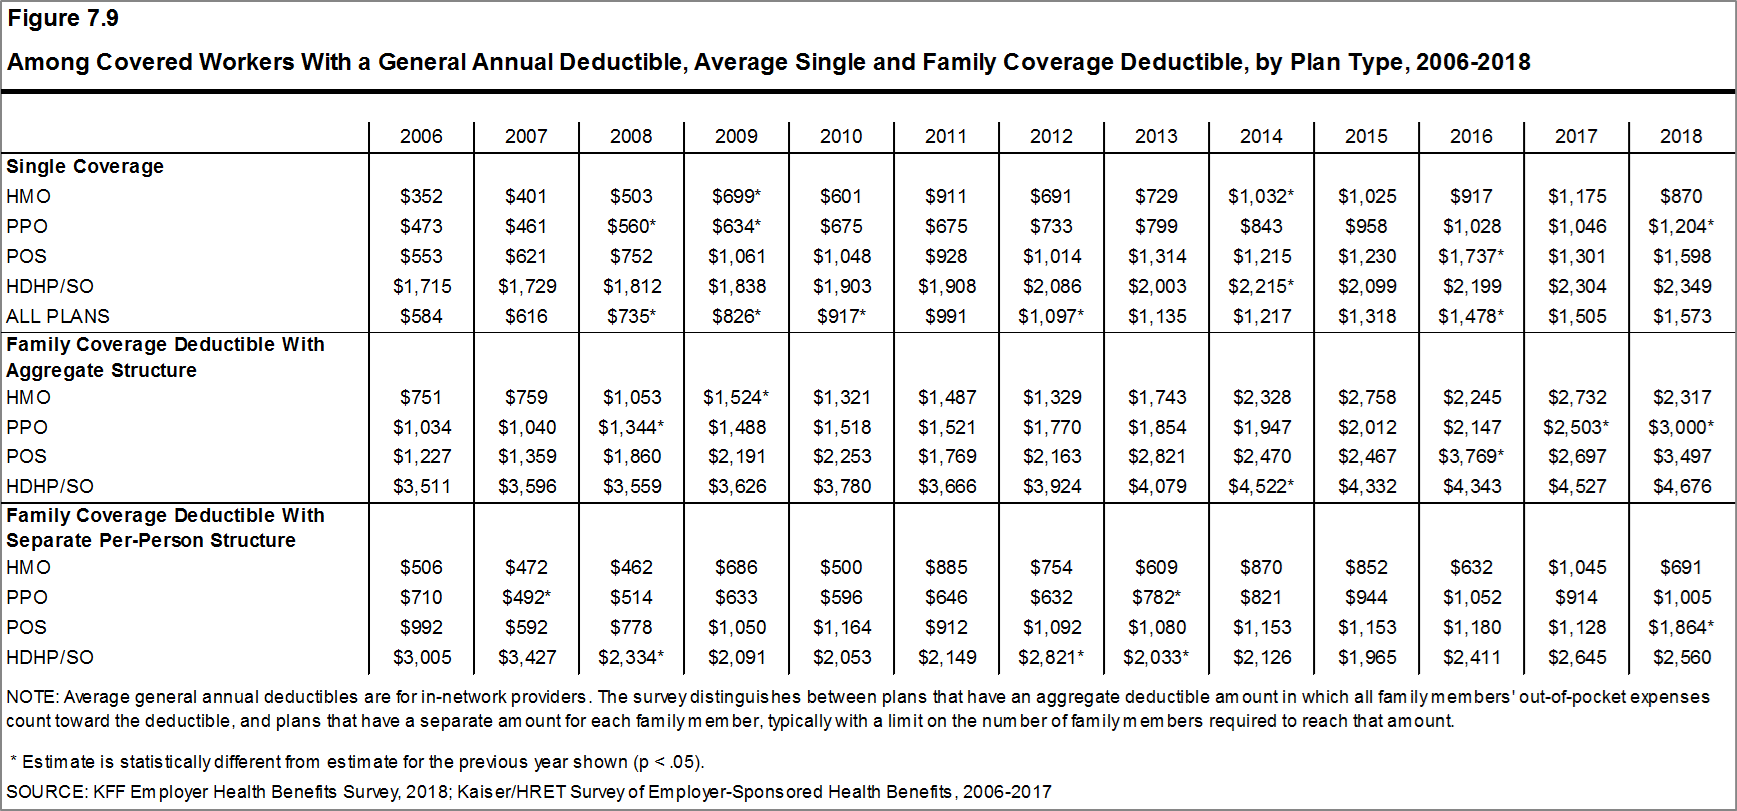 Among Covered Workers With a General Annual Deductible ...